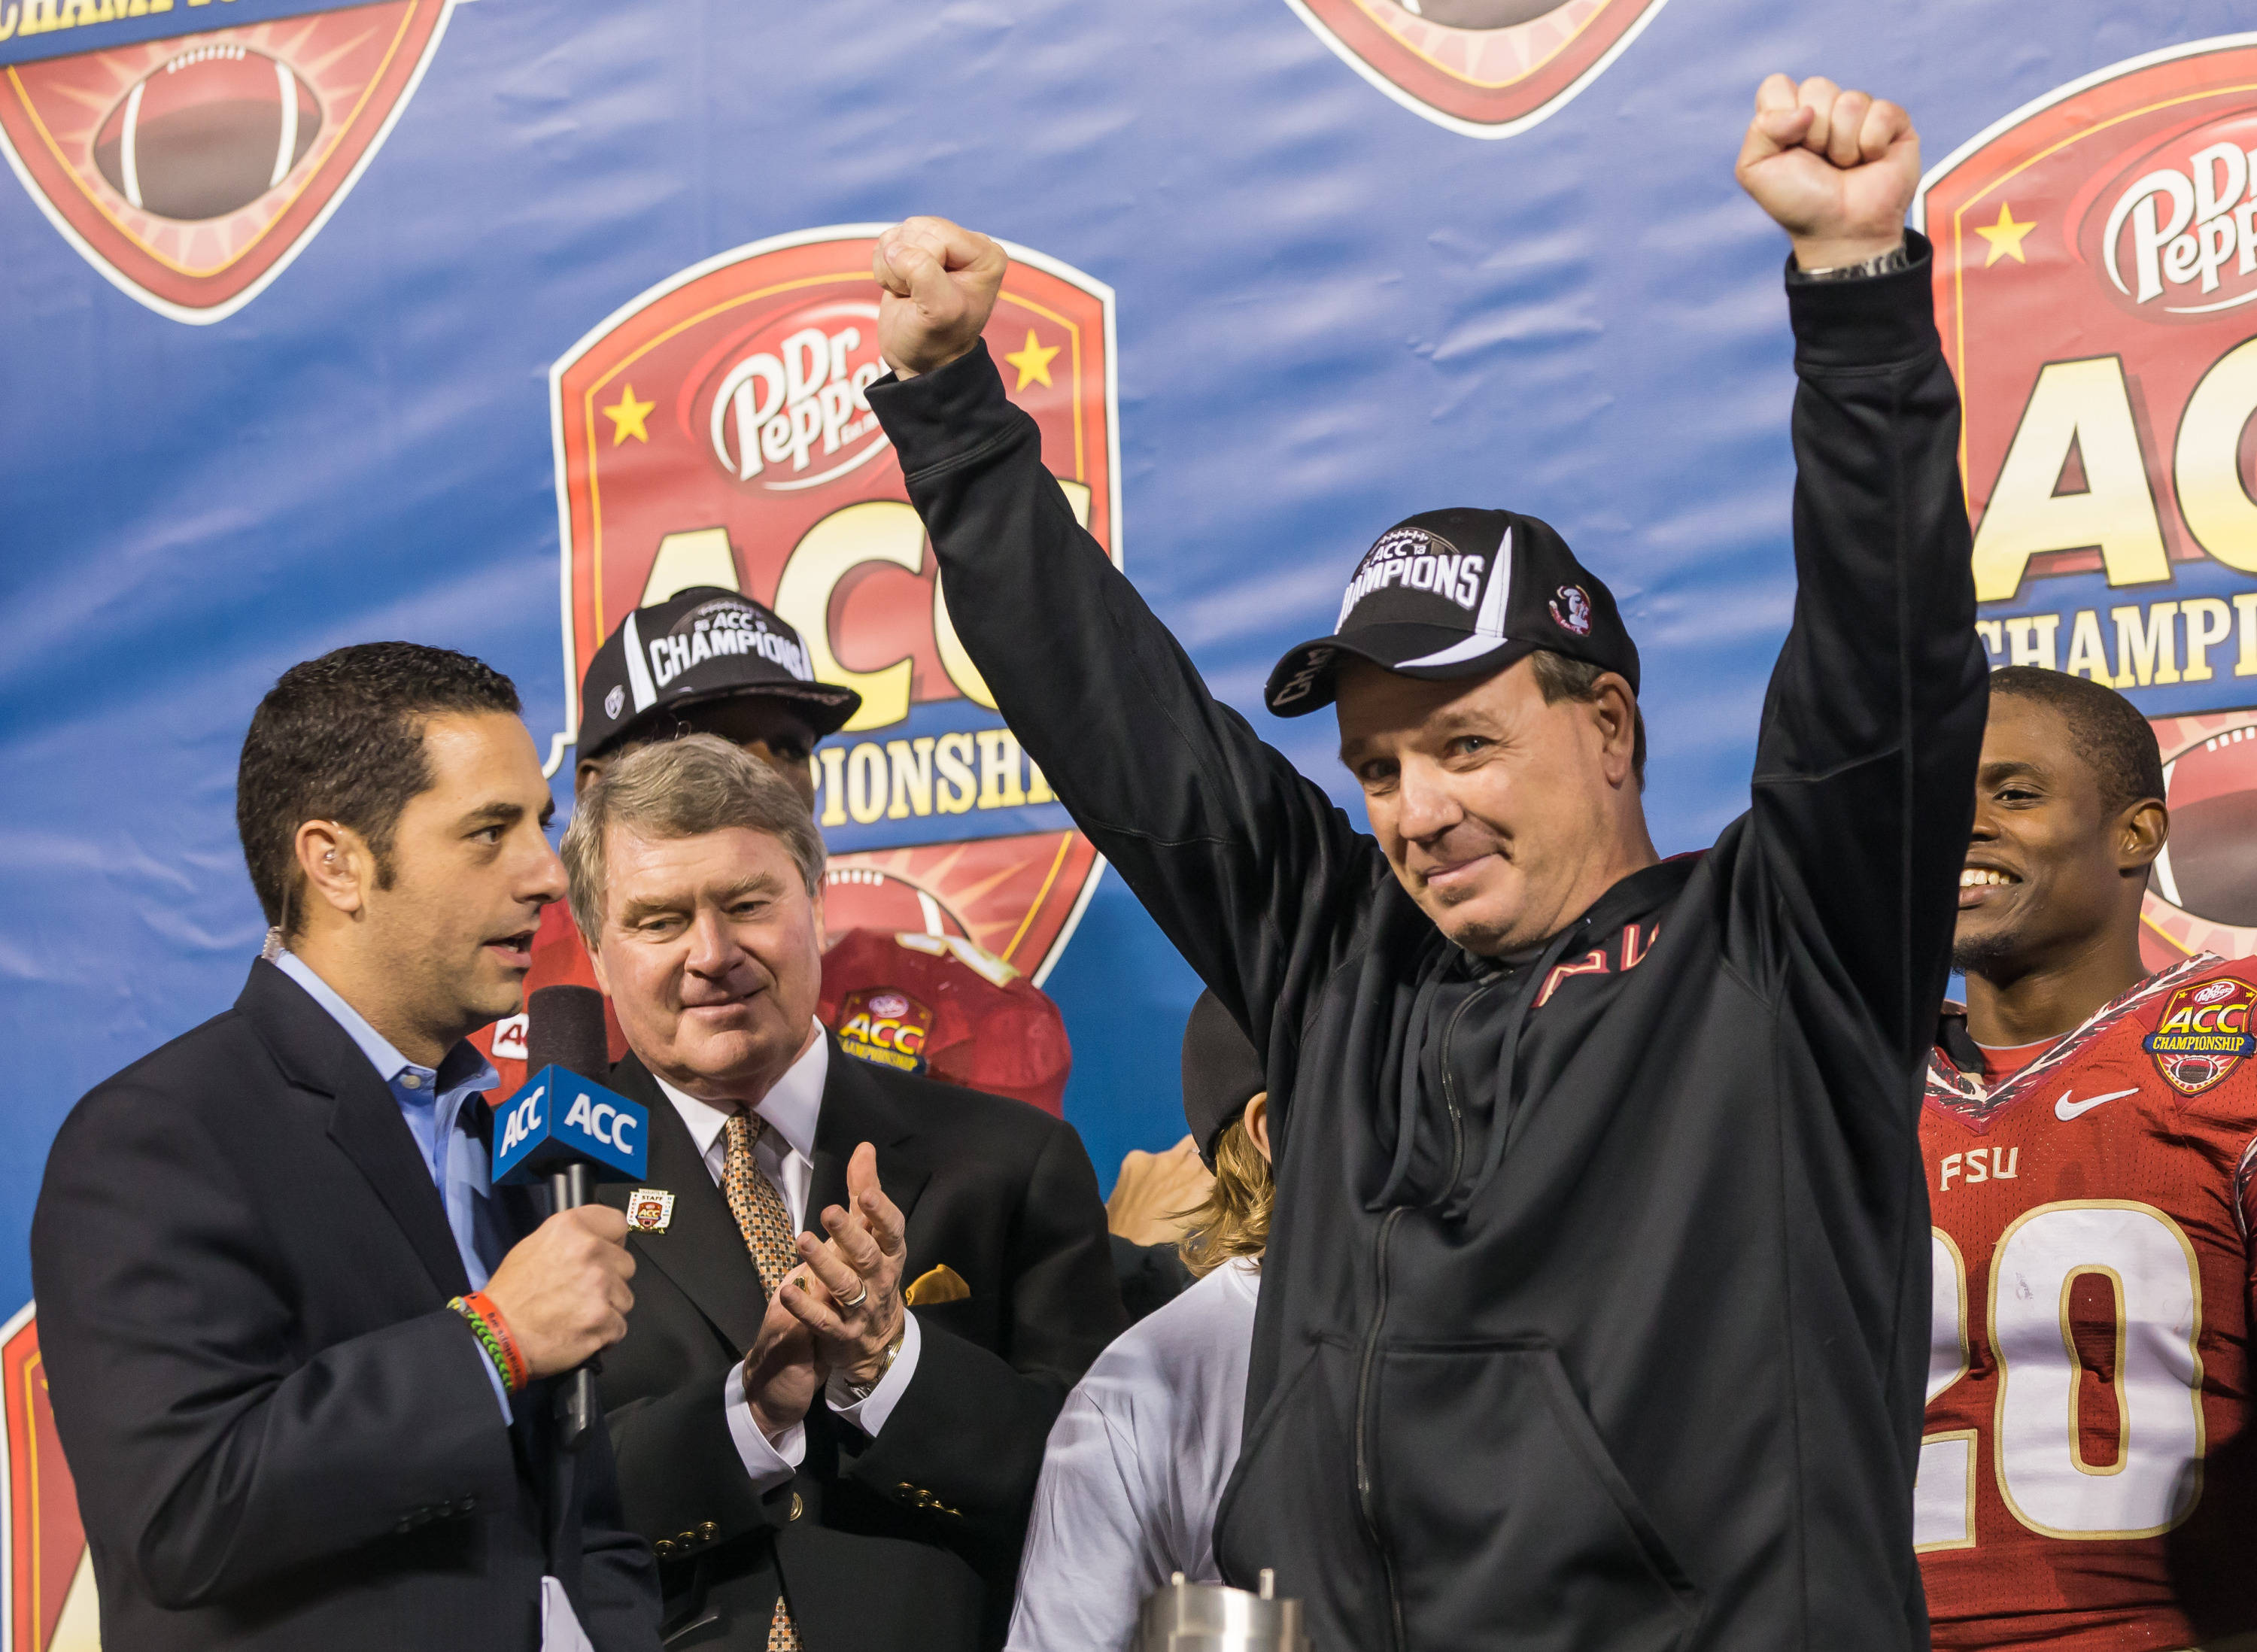 Jimbo Fisher celebrates an ACC Championship and a trip to the BCS National Championship Game.